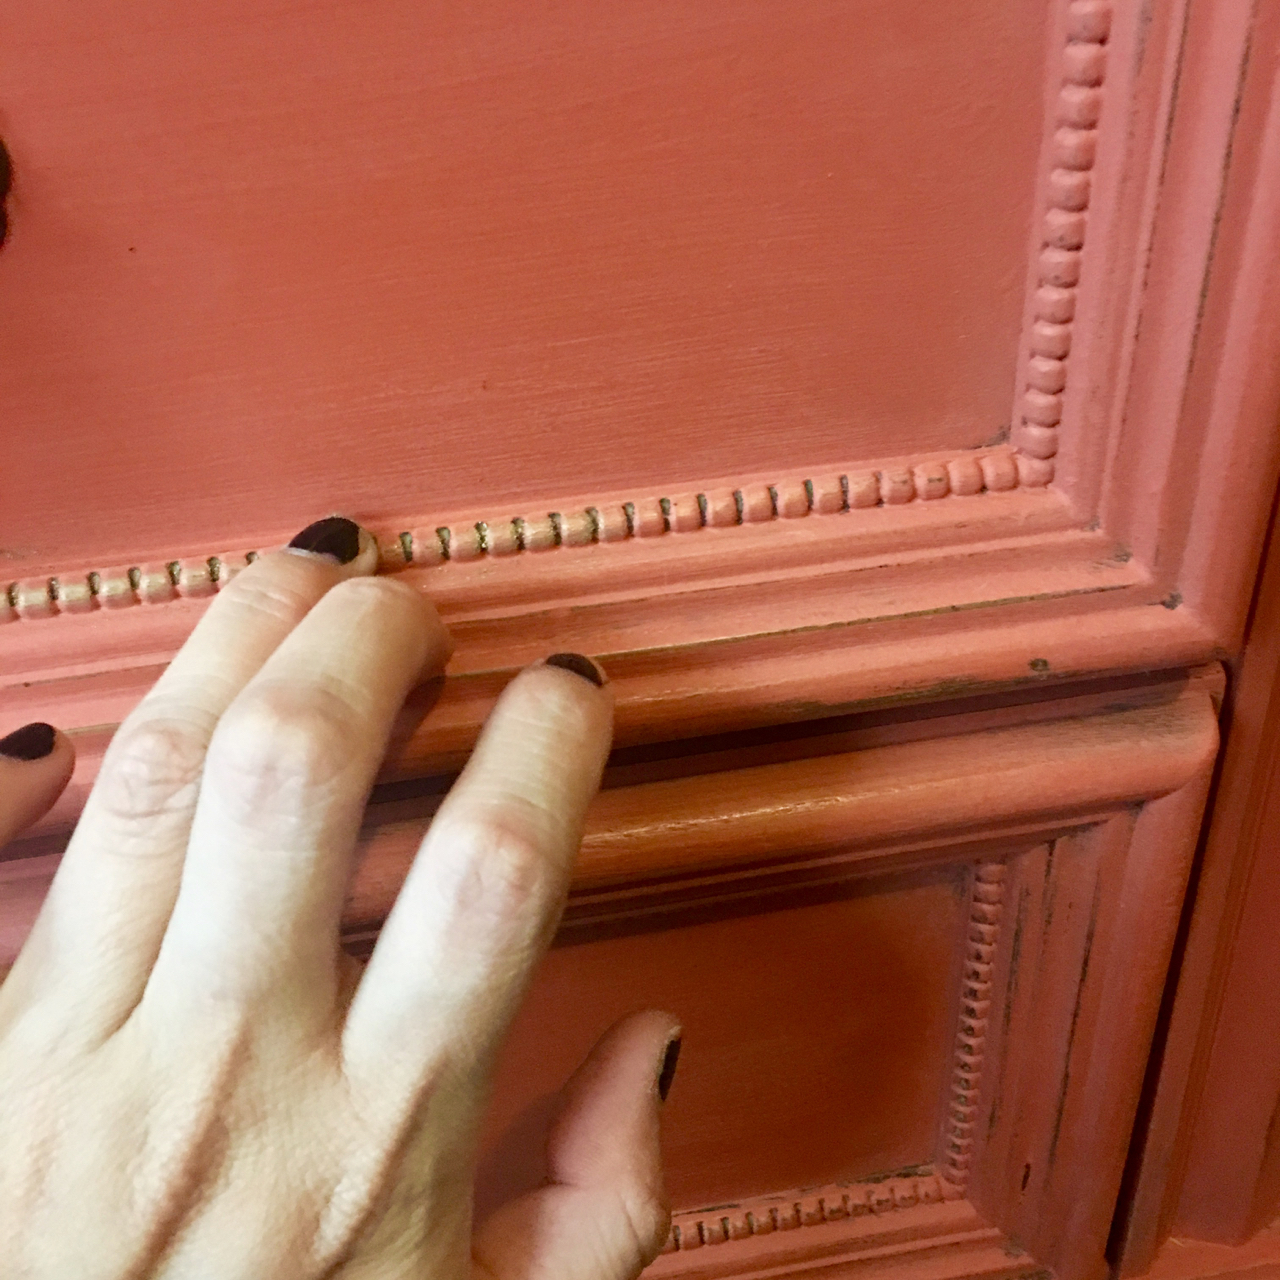 jo-torrijos-a-simpler-design-atlanta-painted-furniture-annie-sloan-barcelona-orange-scandinavian-pink-dresser-gold-details-13.jpg